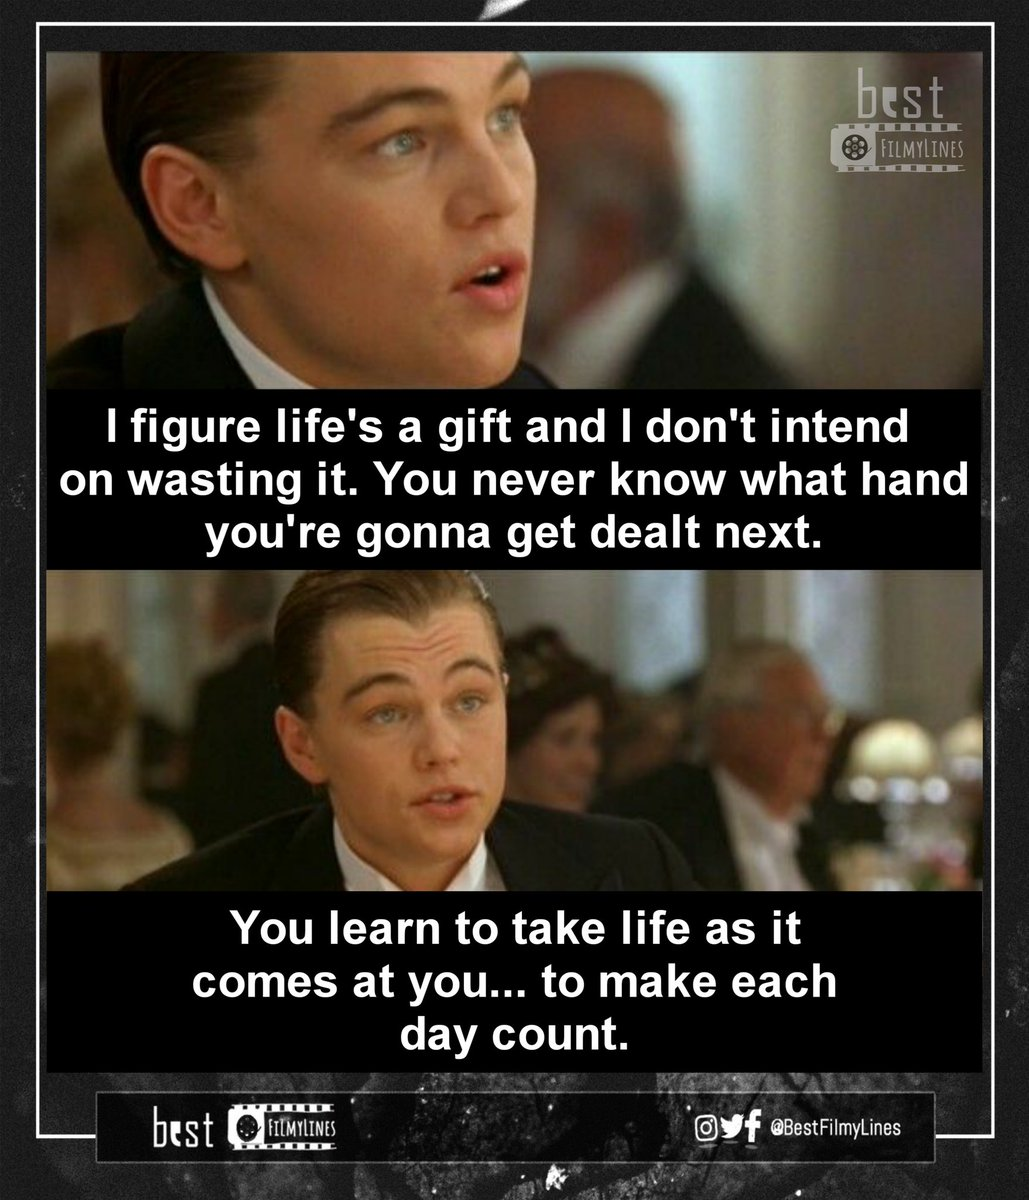 -Titanic (1997) Director: James Cameron  #hollywood #hollywoodmovie #hollywoodmovies #english #cinema #movie #film #dialogue #dialogues #quote #quotes #webseries #tvseries #rvcjinsta #bestfilmylines #leonardodicaprio #titanic #jackdawson #life #motivation #jamescameron pic.twitter.com/XFQVZW5S58